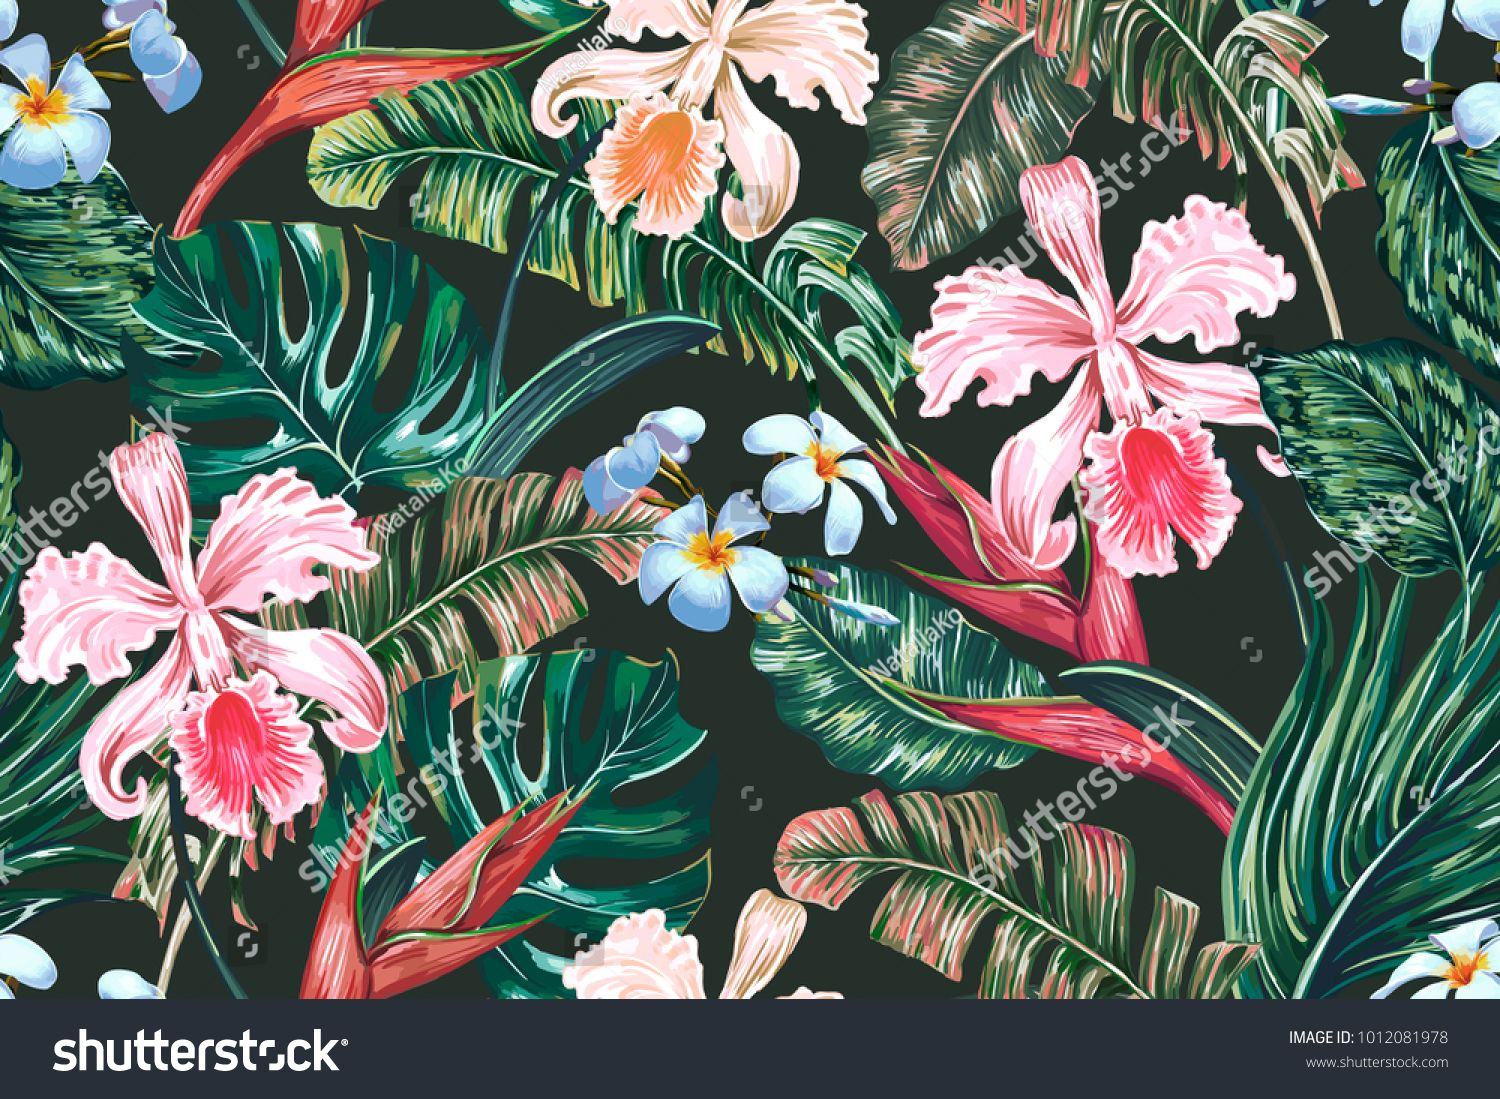 Tropical Floral Seamless Vector Pattern Background With